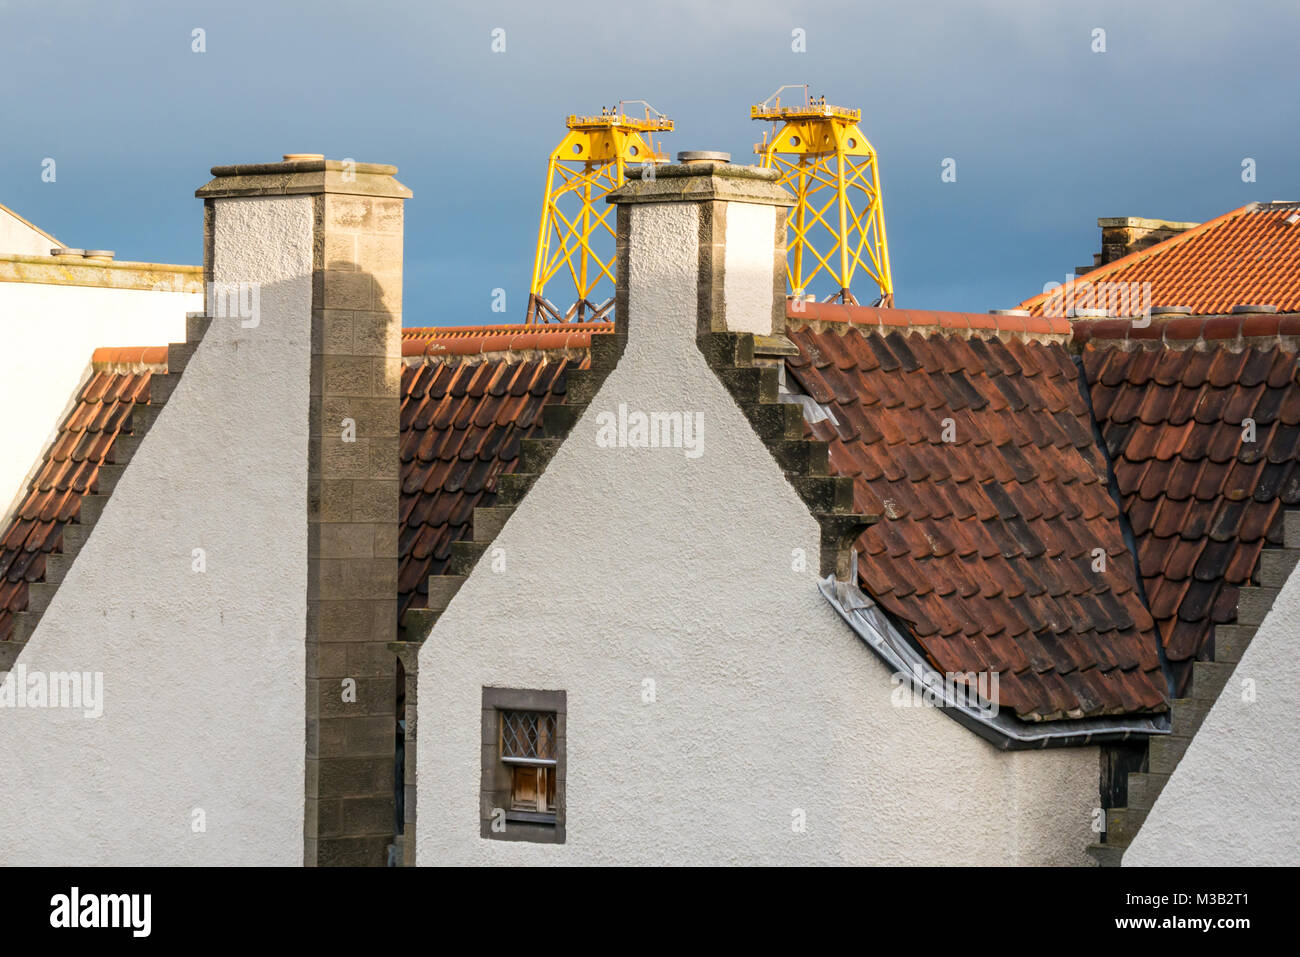 leith-edinburgh-scotland-united-kingdom-